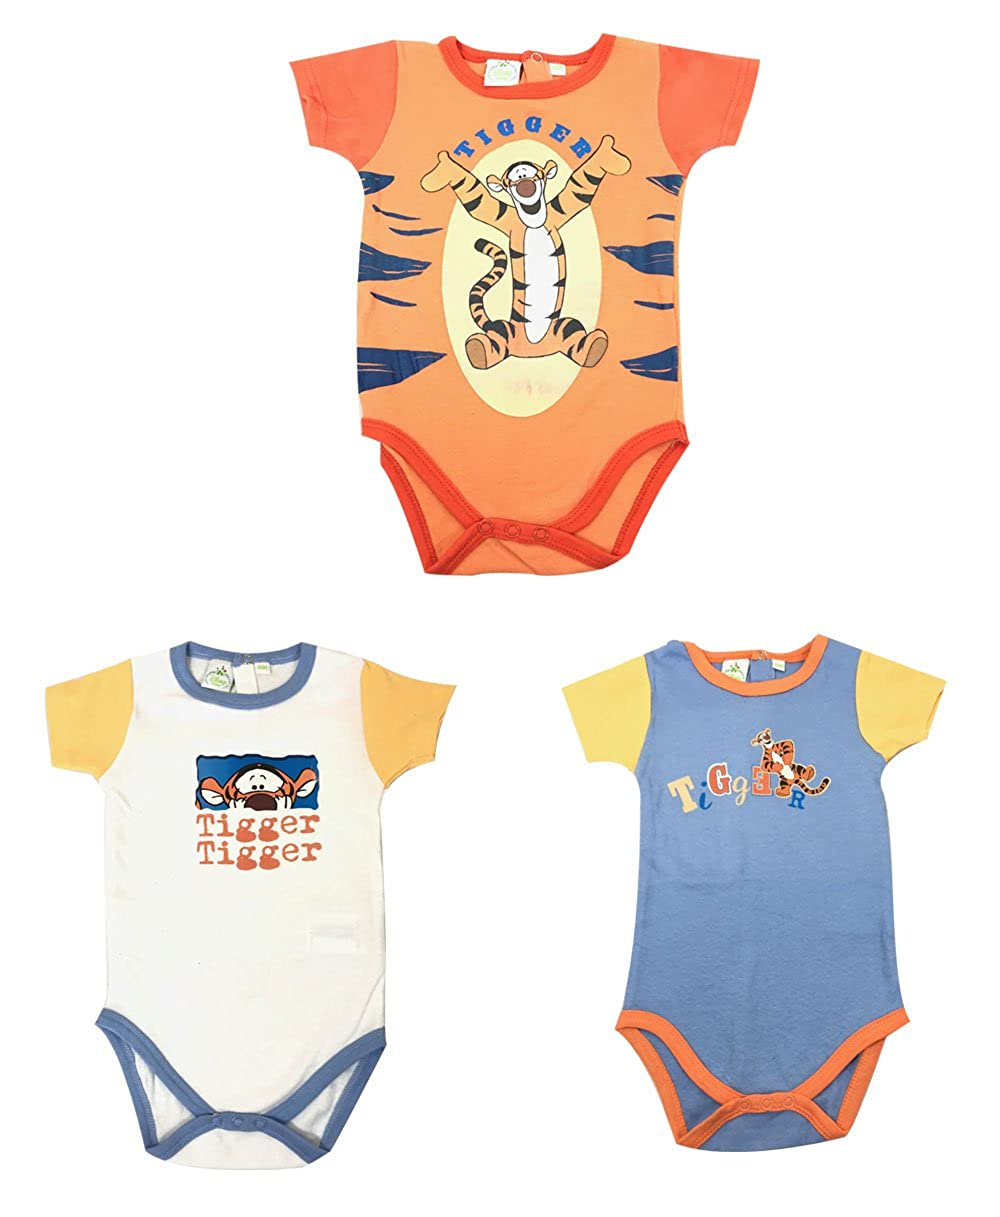 26f2f7aae Disney Winnie-The-Pooh Tiger Baby Boys Short Sleeved Bodysuit Vests 6-24  Months Pack of 3 100% Cotton (12 Months): Amazon.co.uk: Clothing